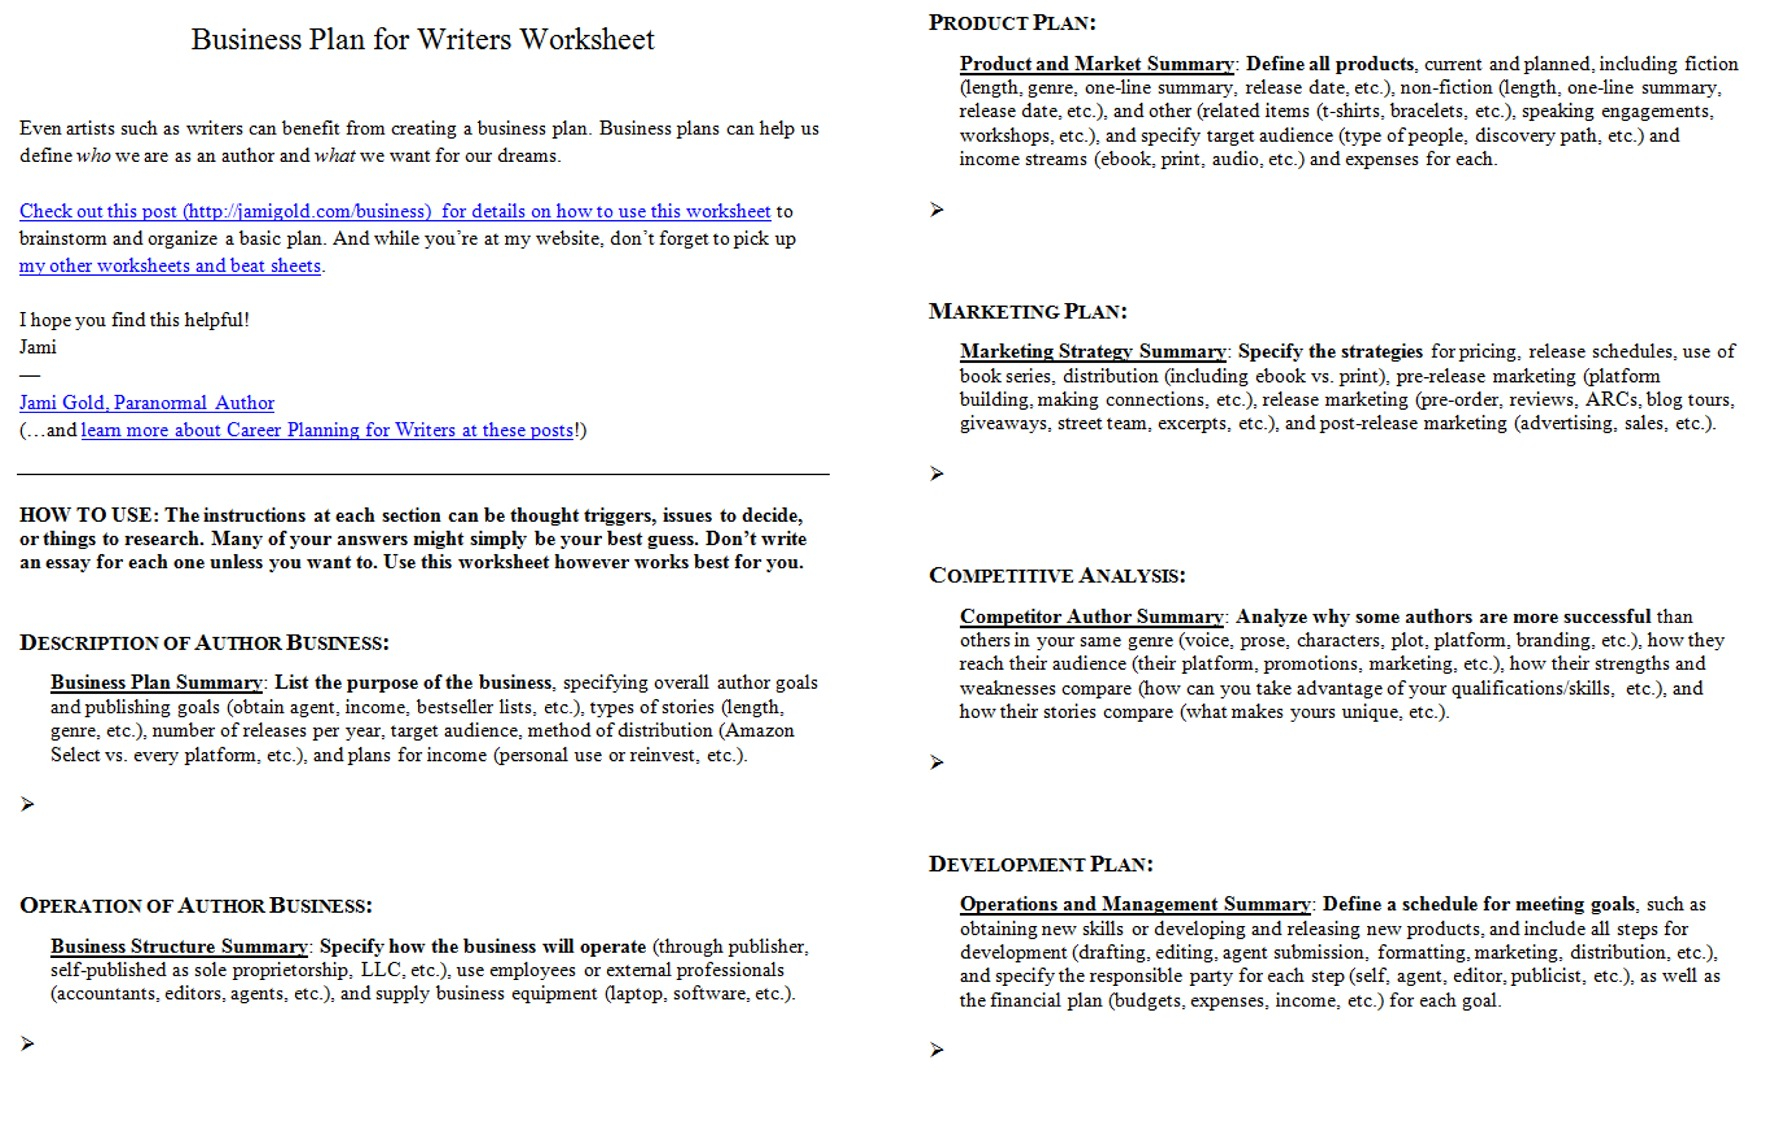 Weirdmailus  Seductive Worksheets For Writers  Jami Gold Paranormal Author With Hot Screen Shot Of Both Pages Of The Business Plan For Writers Worksheet With Delightful Ordering Fractions Worksheet Ks Also Area Rectangles Worksheet In Addition Conjunction Worksheets For Grade  And Math Calculation Worksheets As Well As Subtraction Worksheets Word Problems Additionally Practice Latitude And Longitude Worksheets From Jamigoldcom With Weirdmailus  Hot Worksheets For Writers  Jami Gold Paranormal Author With Delightful Screen Shot Of Both Pages Of The Business Plan For Writers Worksheet And Seductive Ordering Fractions Worksheet Ks Also Area Rectangles Worksheet In Addition Conjunction Worksheets For Grade  From Jamigoldcom